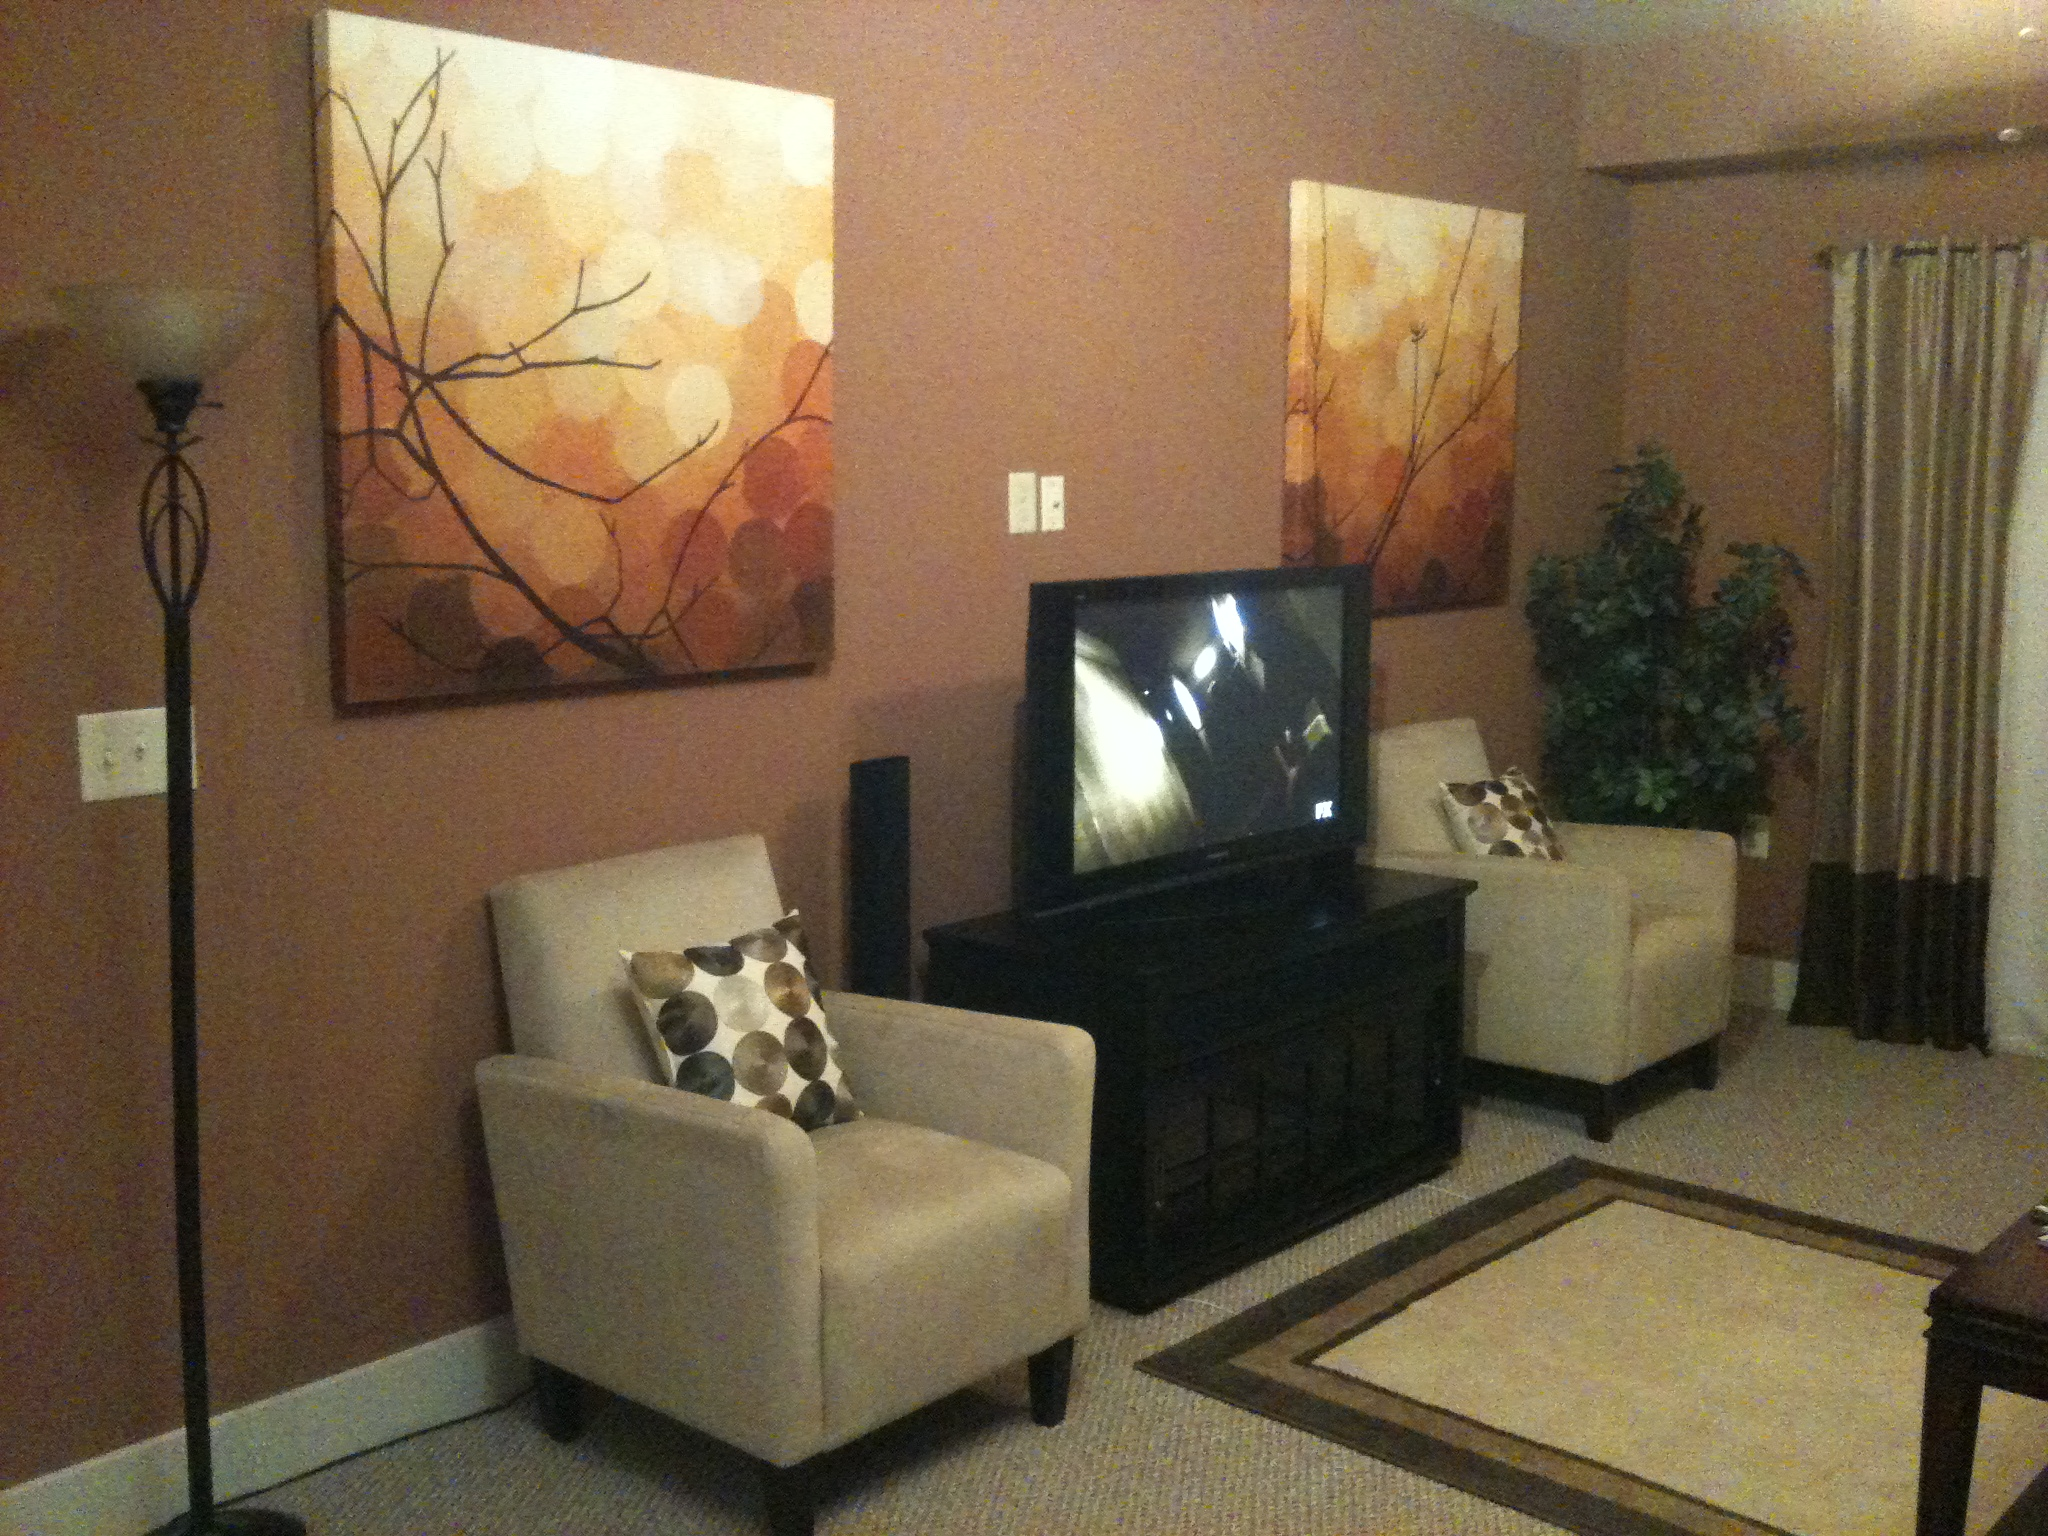 Home design living room paint colors for living room walls Good color paint for living room